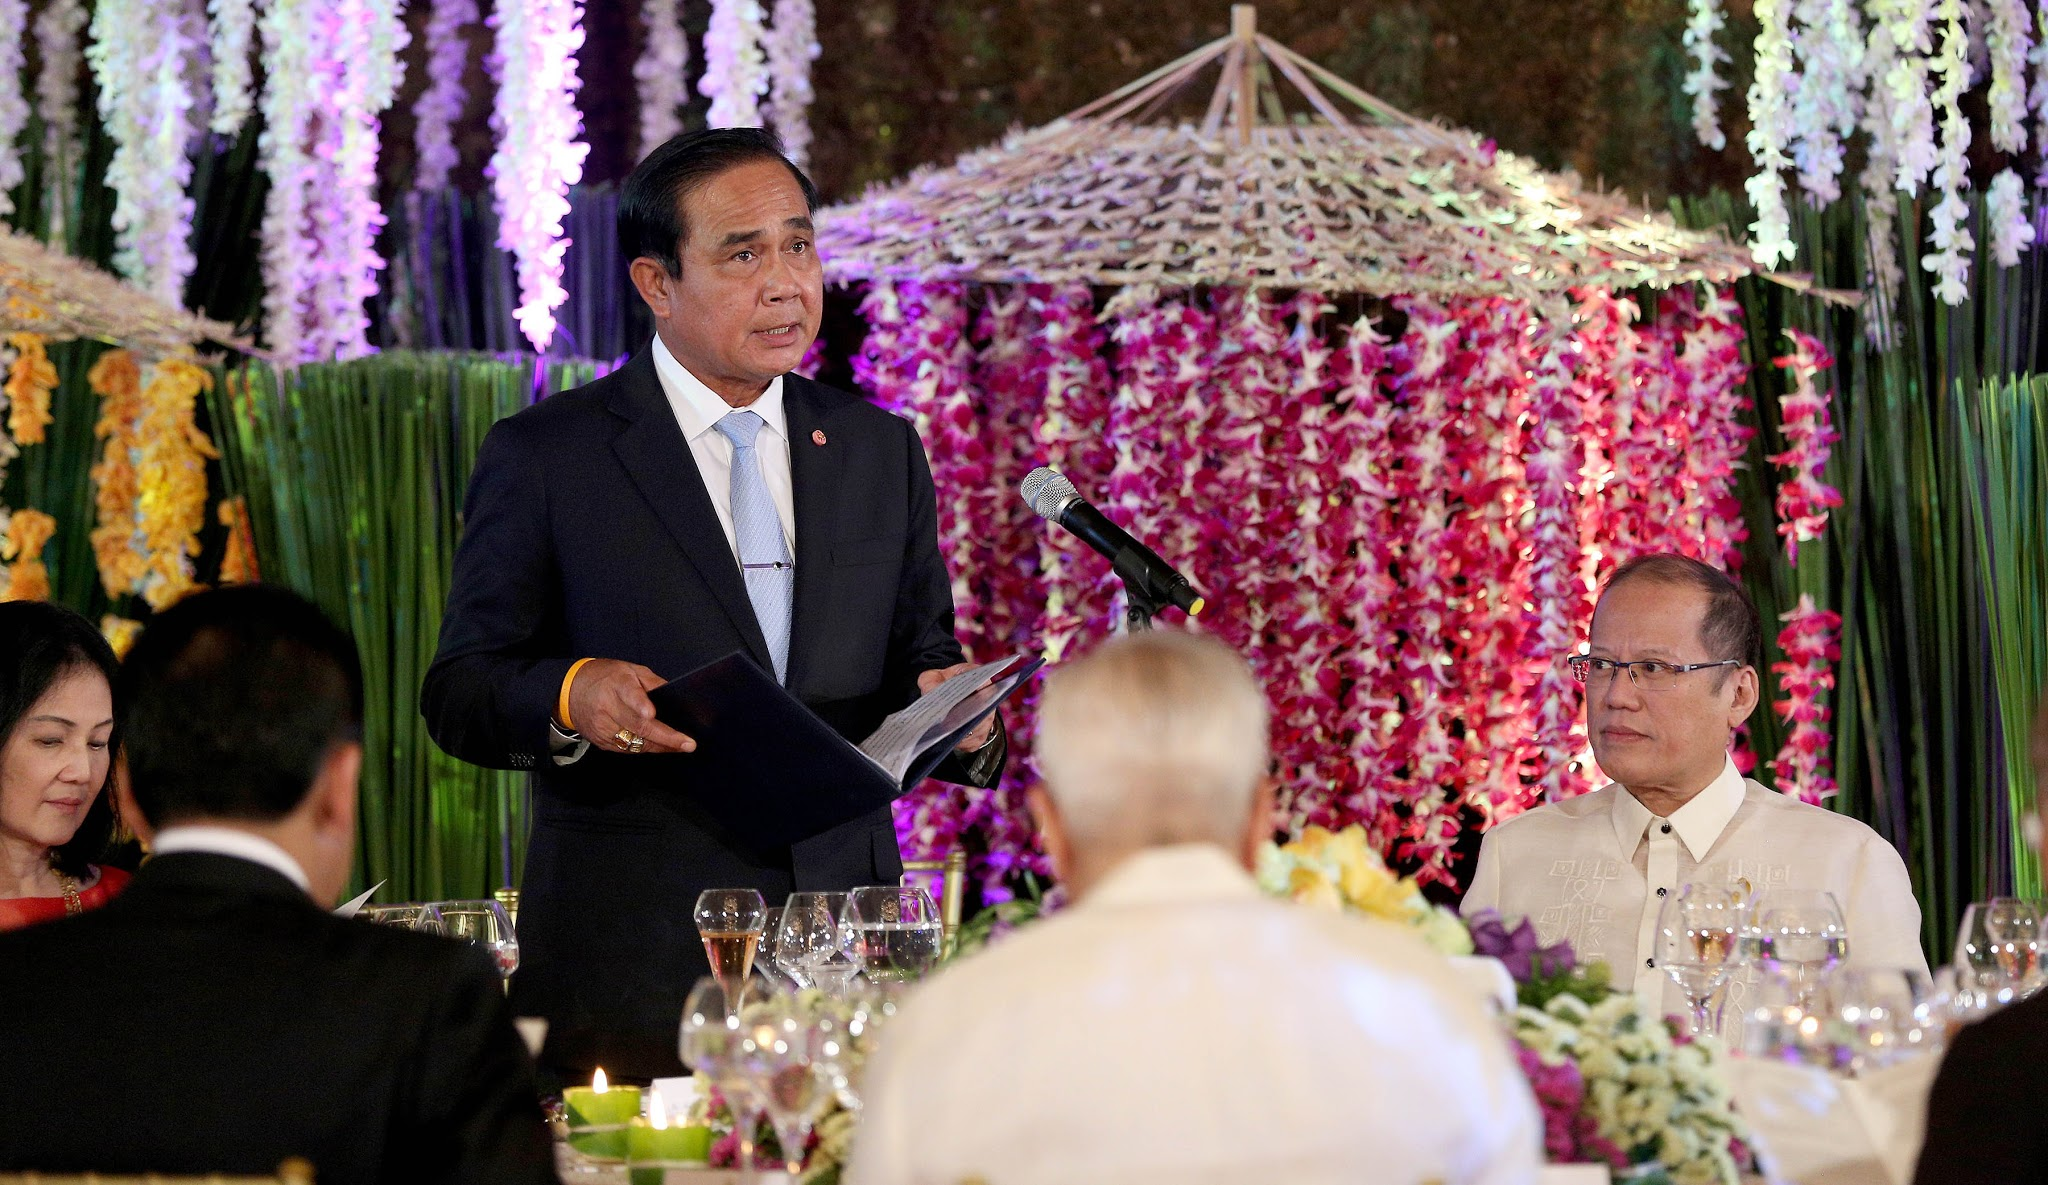 President Benigno S. Aquino III listens as His Excellency General Prayut Chan-o-cha, Prime Minister of the Kingdom of Thailand, delivers his message during the State Luncheon at the Rizal Hall of the Malacañan Palace for the Official Visit to the Philippines on Friday (August 28, 2015). This is the Thai Prime Minister's first visit to the Philippines since assuming office in August 2014. This visit hopes to deepen the Philippines' partnership with Thailand, a fellow founding member of ASEAN and a long-time friend. Thailand is the Philippines' 8th largest trading partner in 2014, with total two-way trade amounting to US$ 5.83 billion. The Philippines and Thailand enjoy excellent and cordial relations at the bilateral, regional, and multilateral levels. (Photo by Robert Viñas/ Malacañang Photo Bureau)